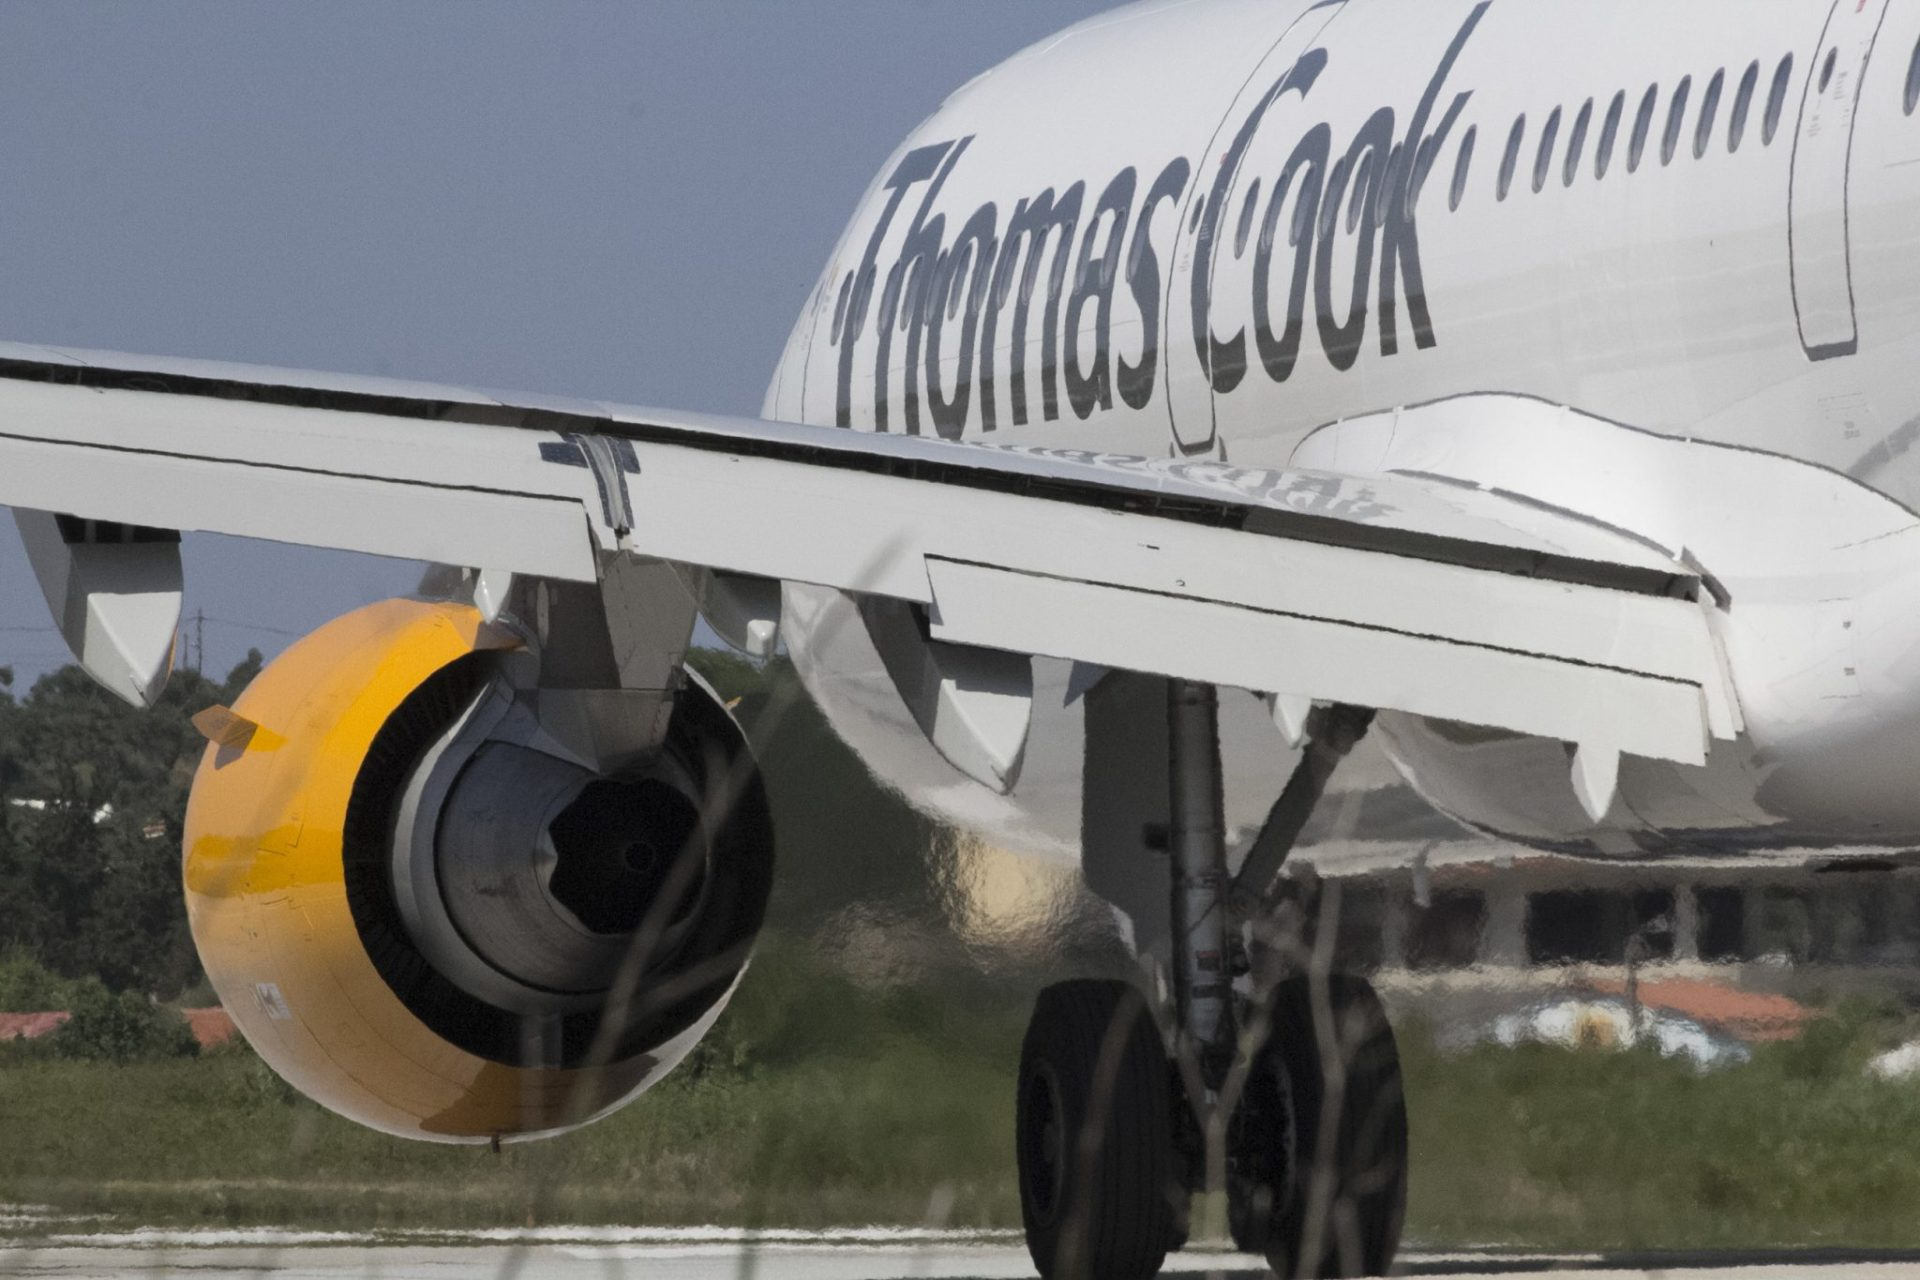 Thomas Cook in rescue talks with China's Fosun